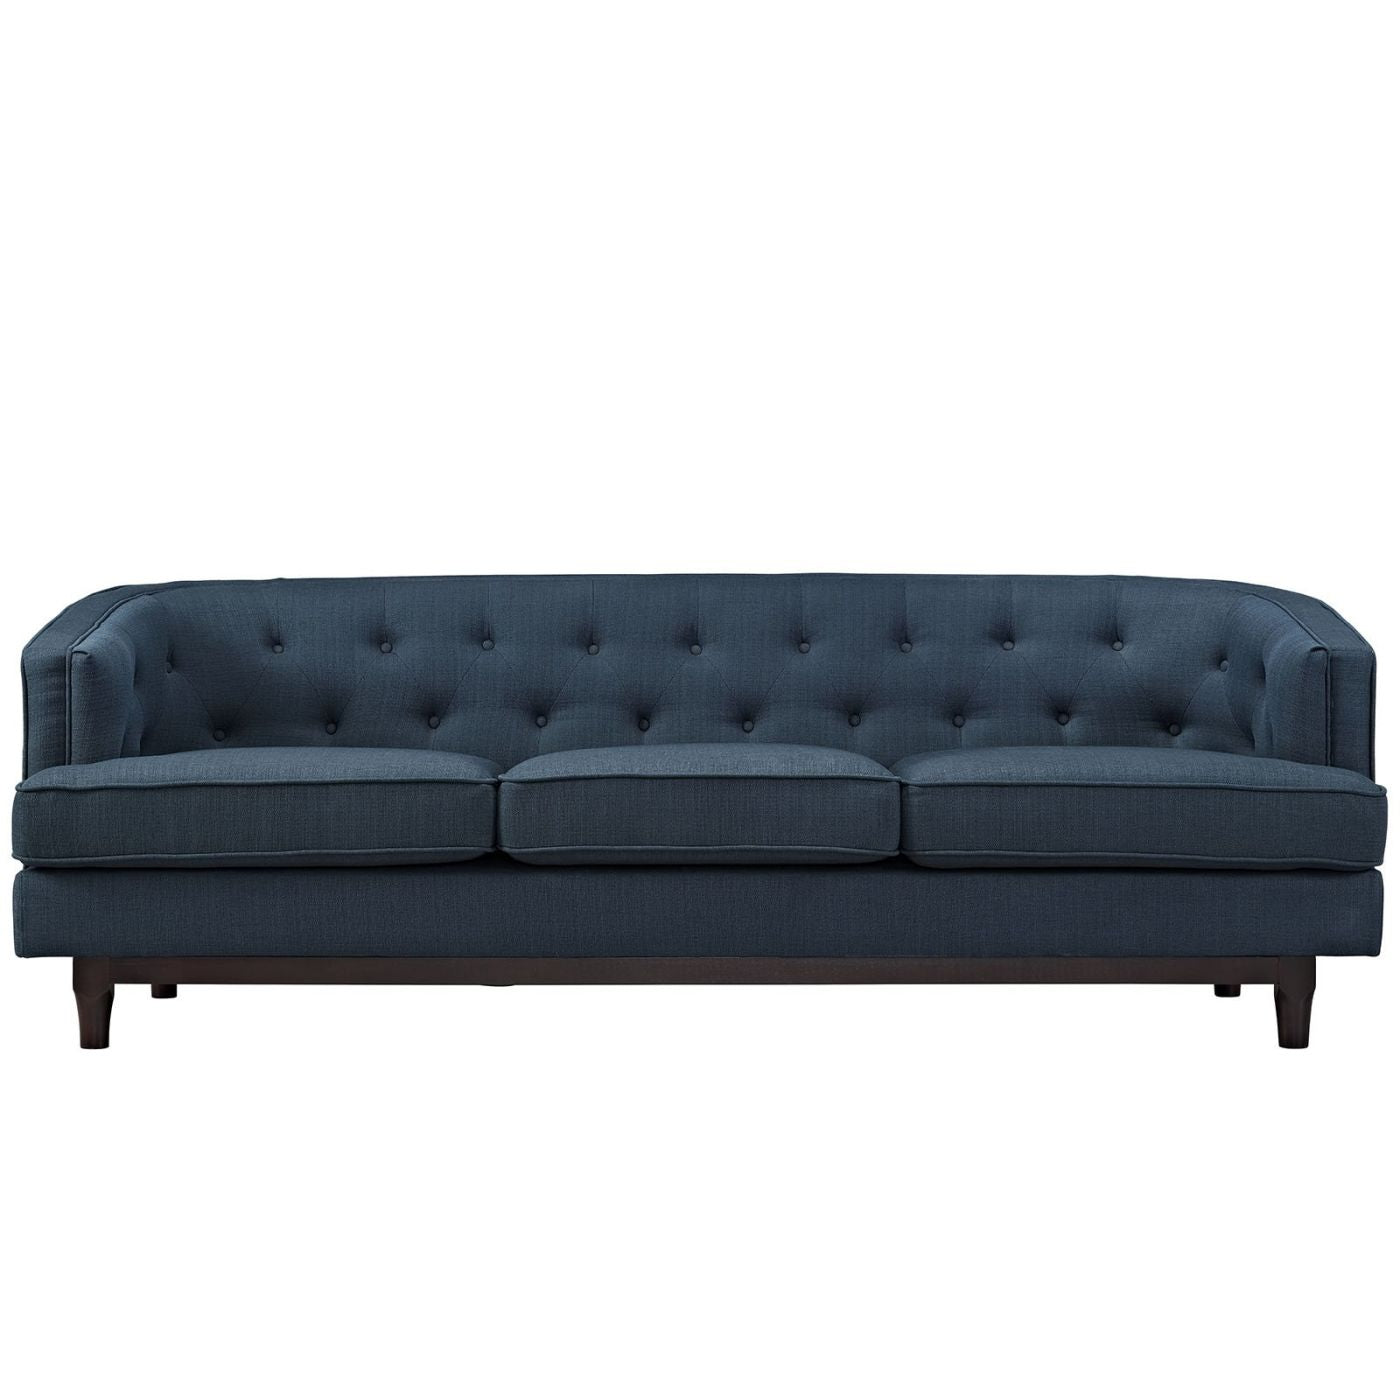 Modway Sofas On Sale Eei 2131 Lgr Coast Upholstered Sofa